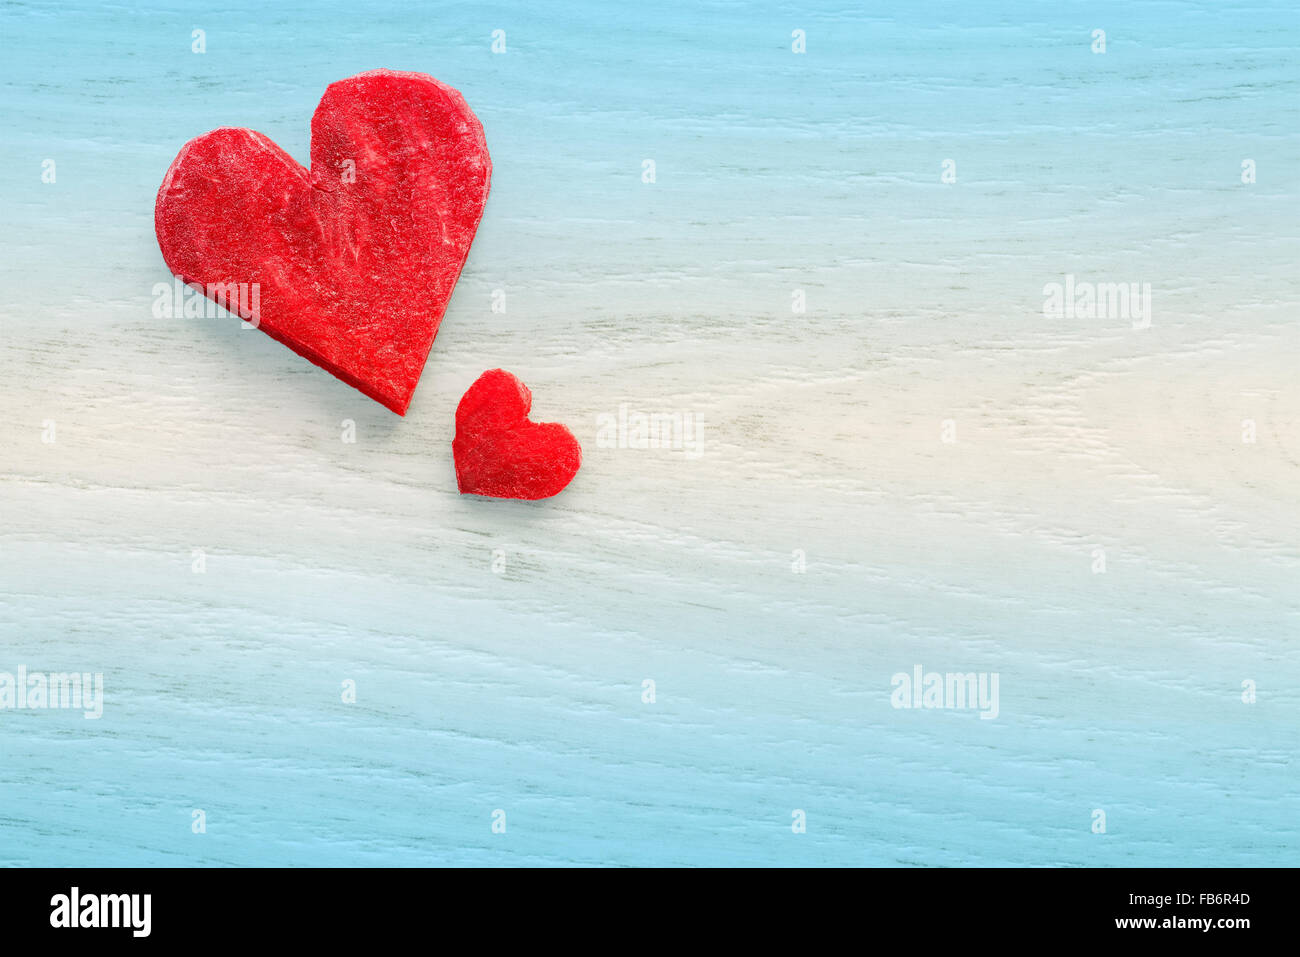 Retro stylized hearts made of beet on wooden background, space for text. - Stock Image